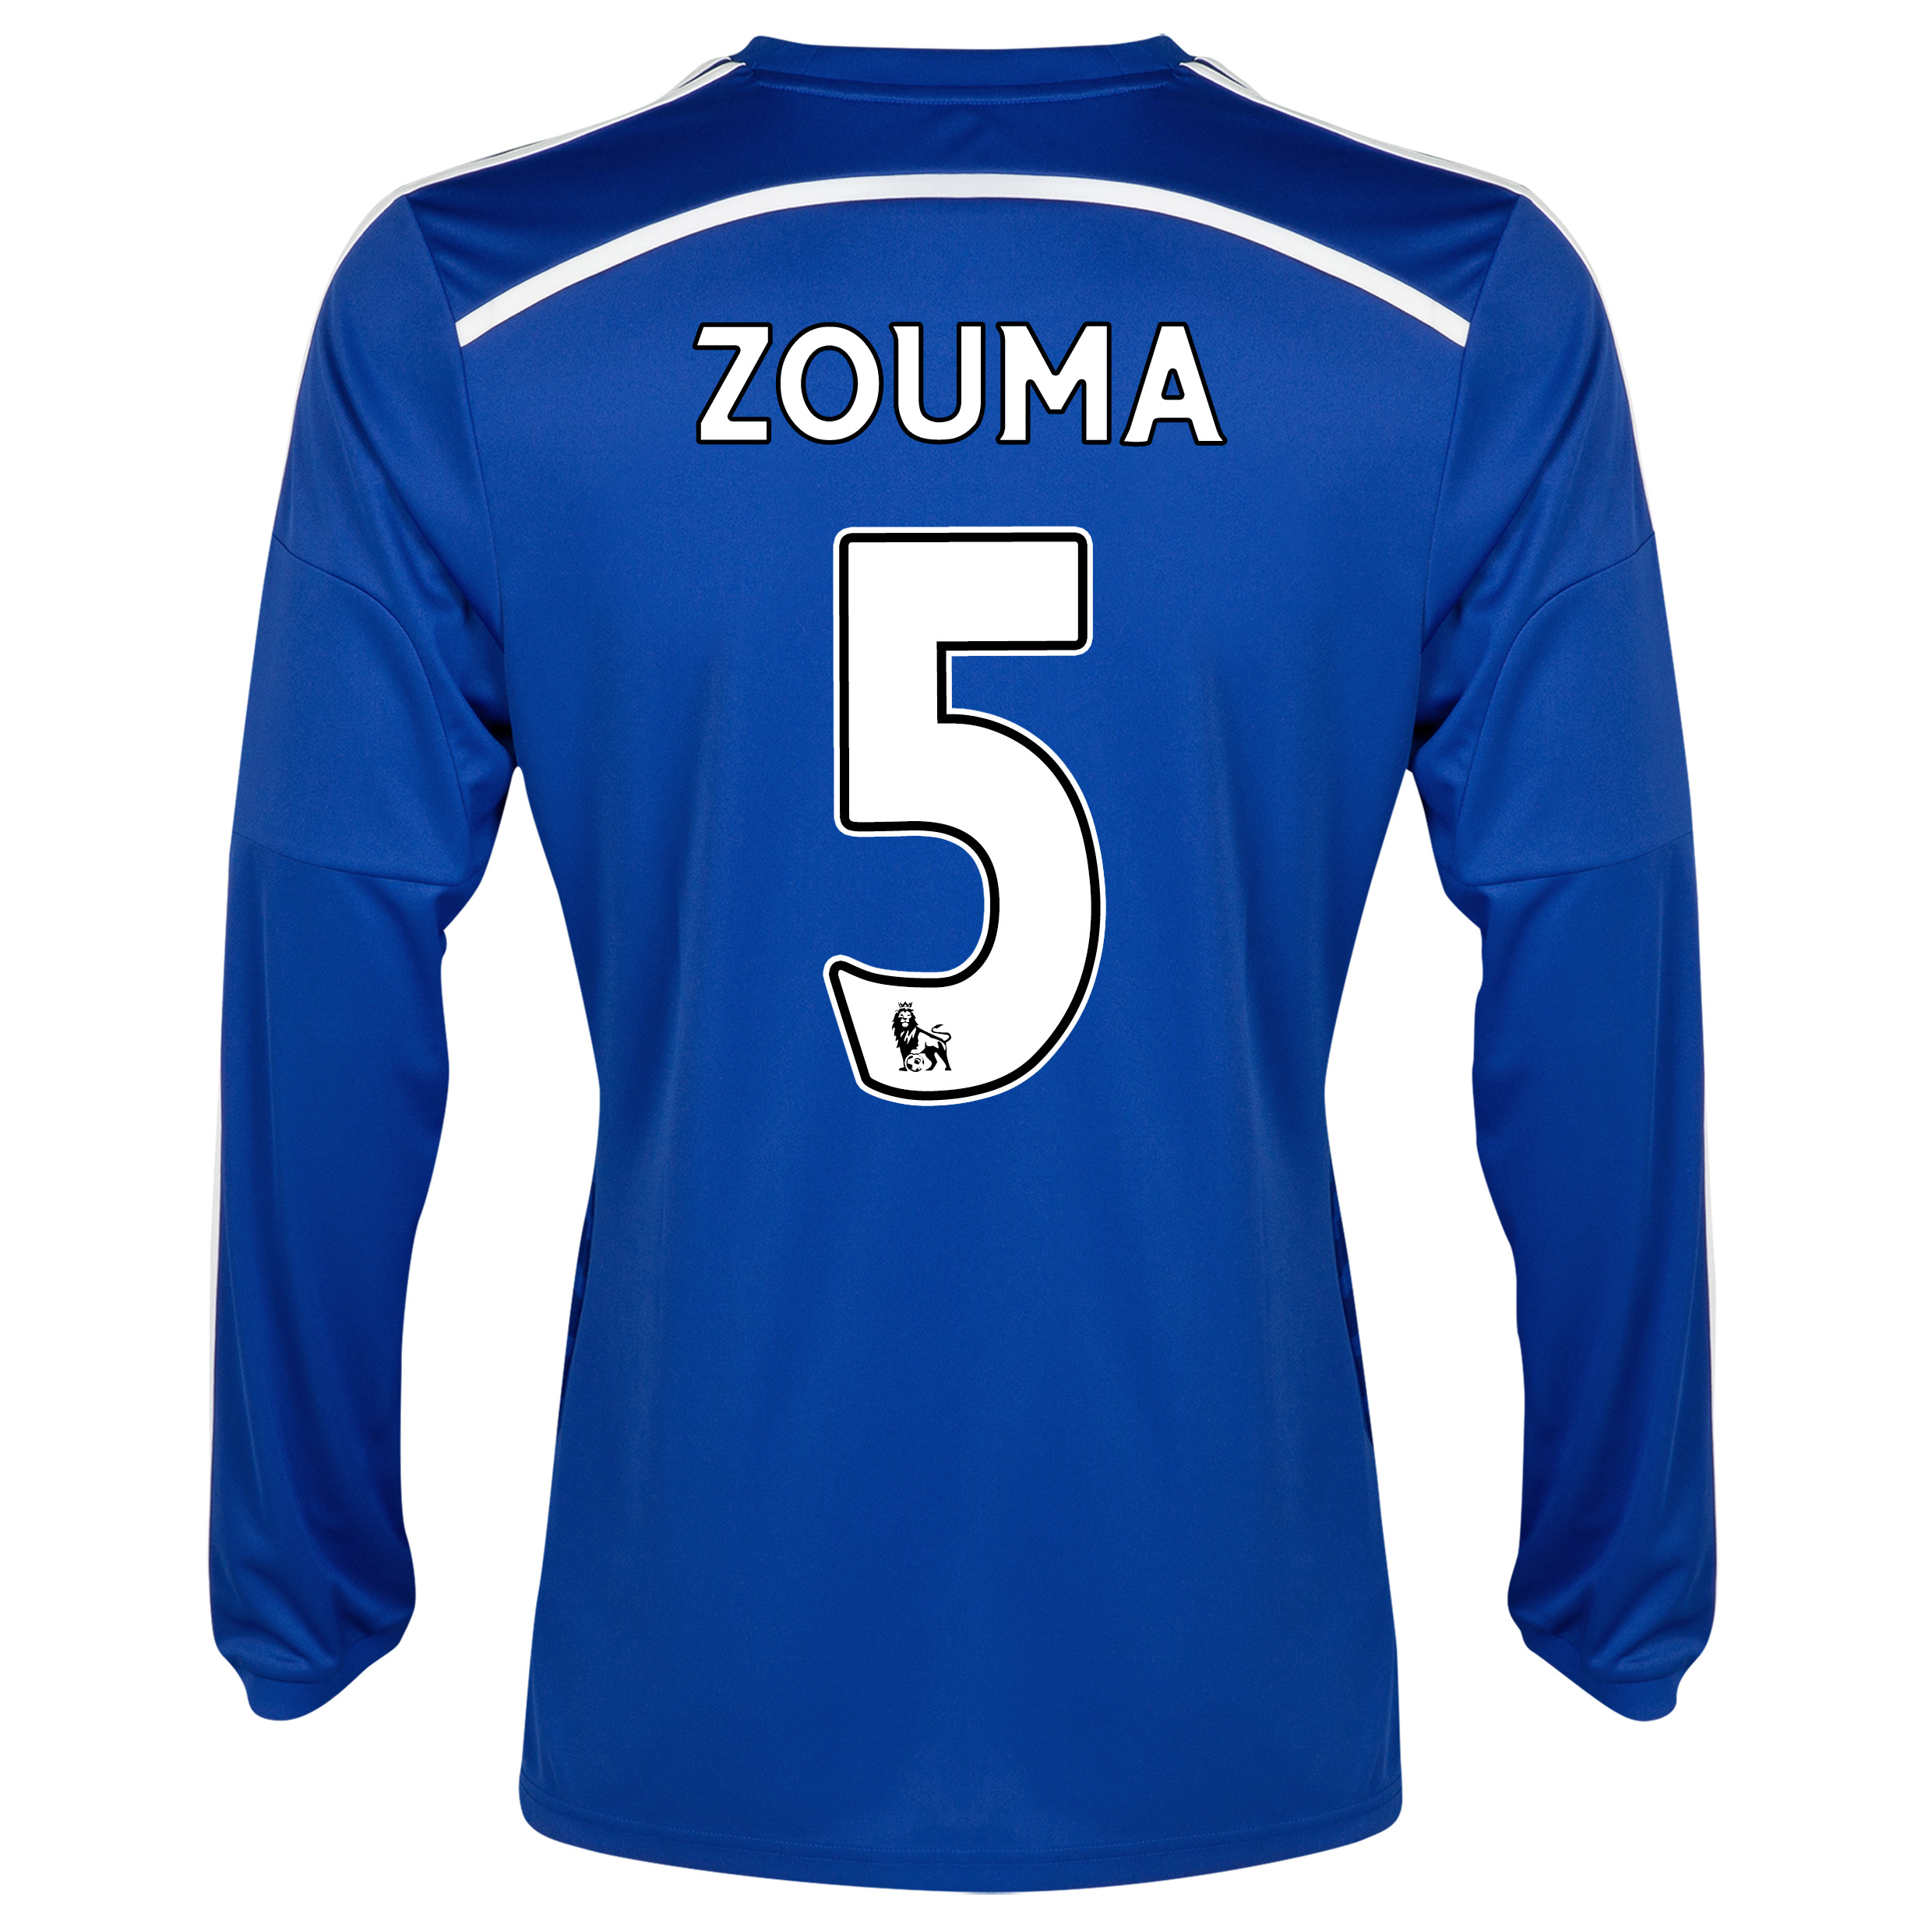 Chelsea Home Shirt 2014/15 - Long Sleeve - Kids with ZOUMA 5 printing